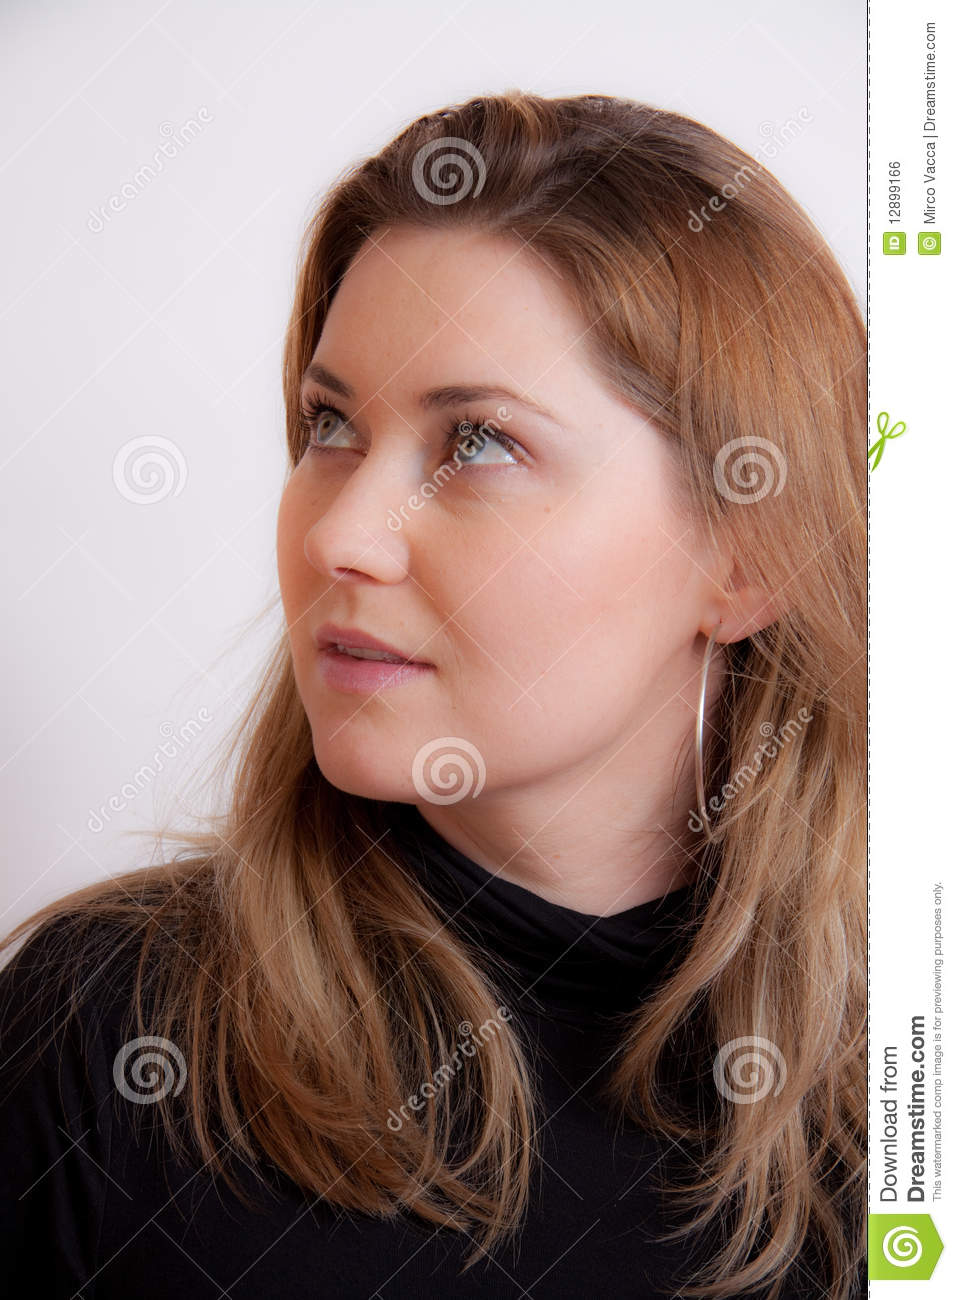 Download Portret of a woman stock photo. Image of body, pretty - 12899166